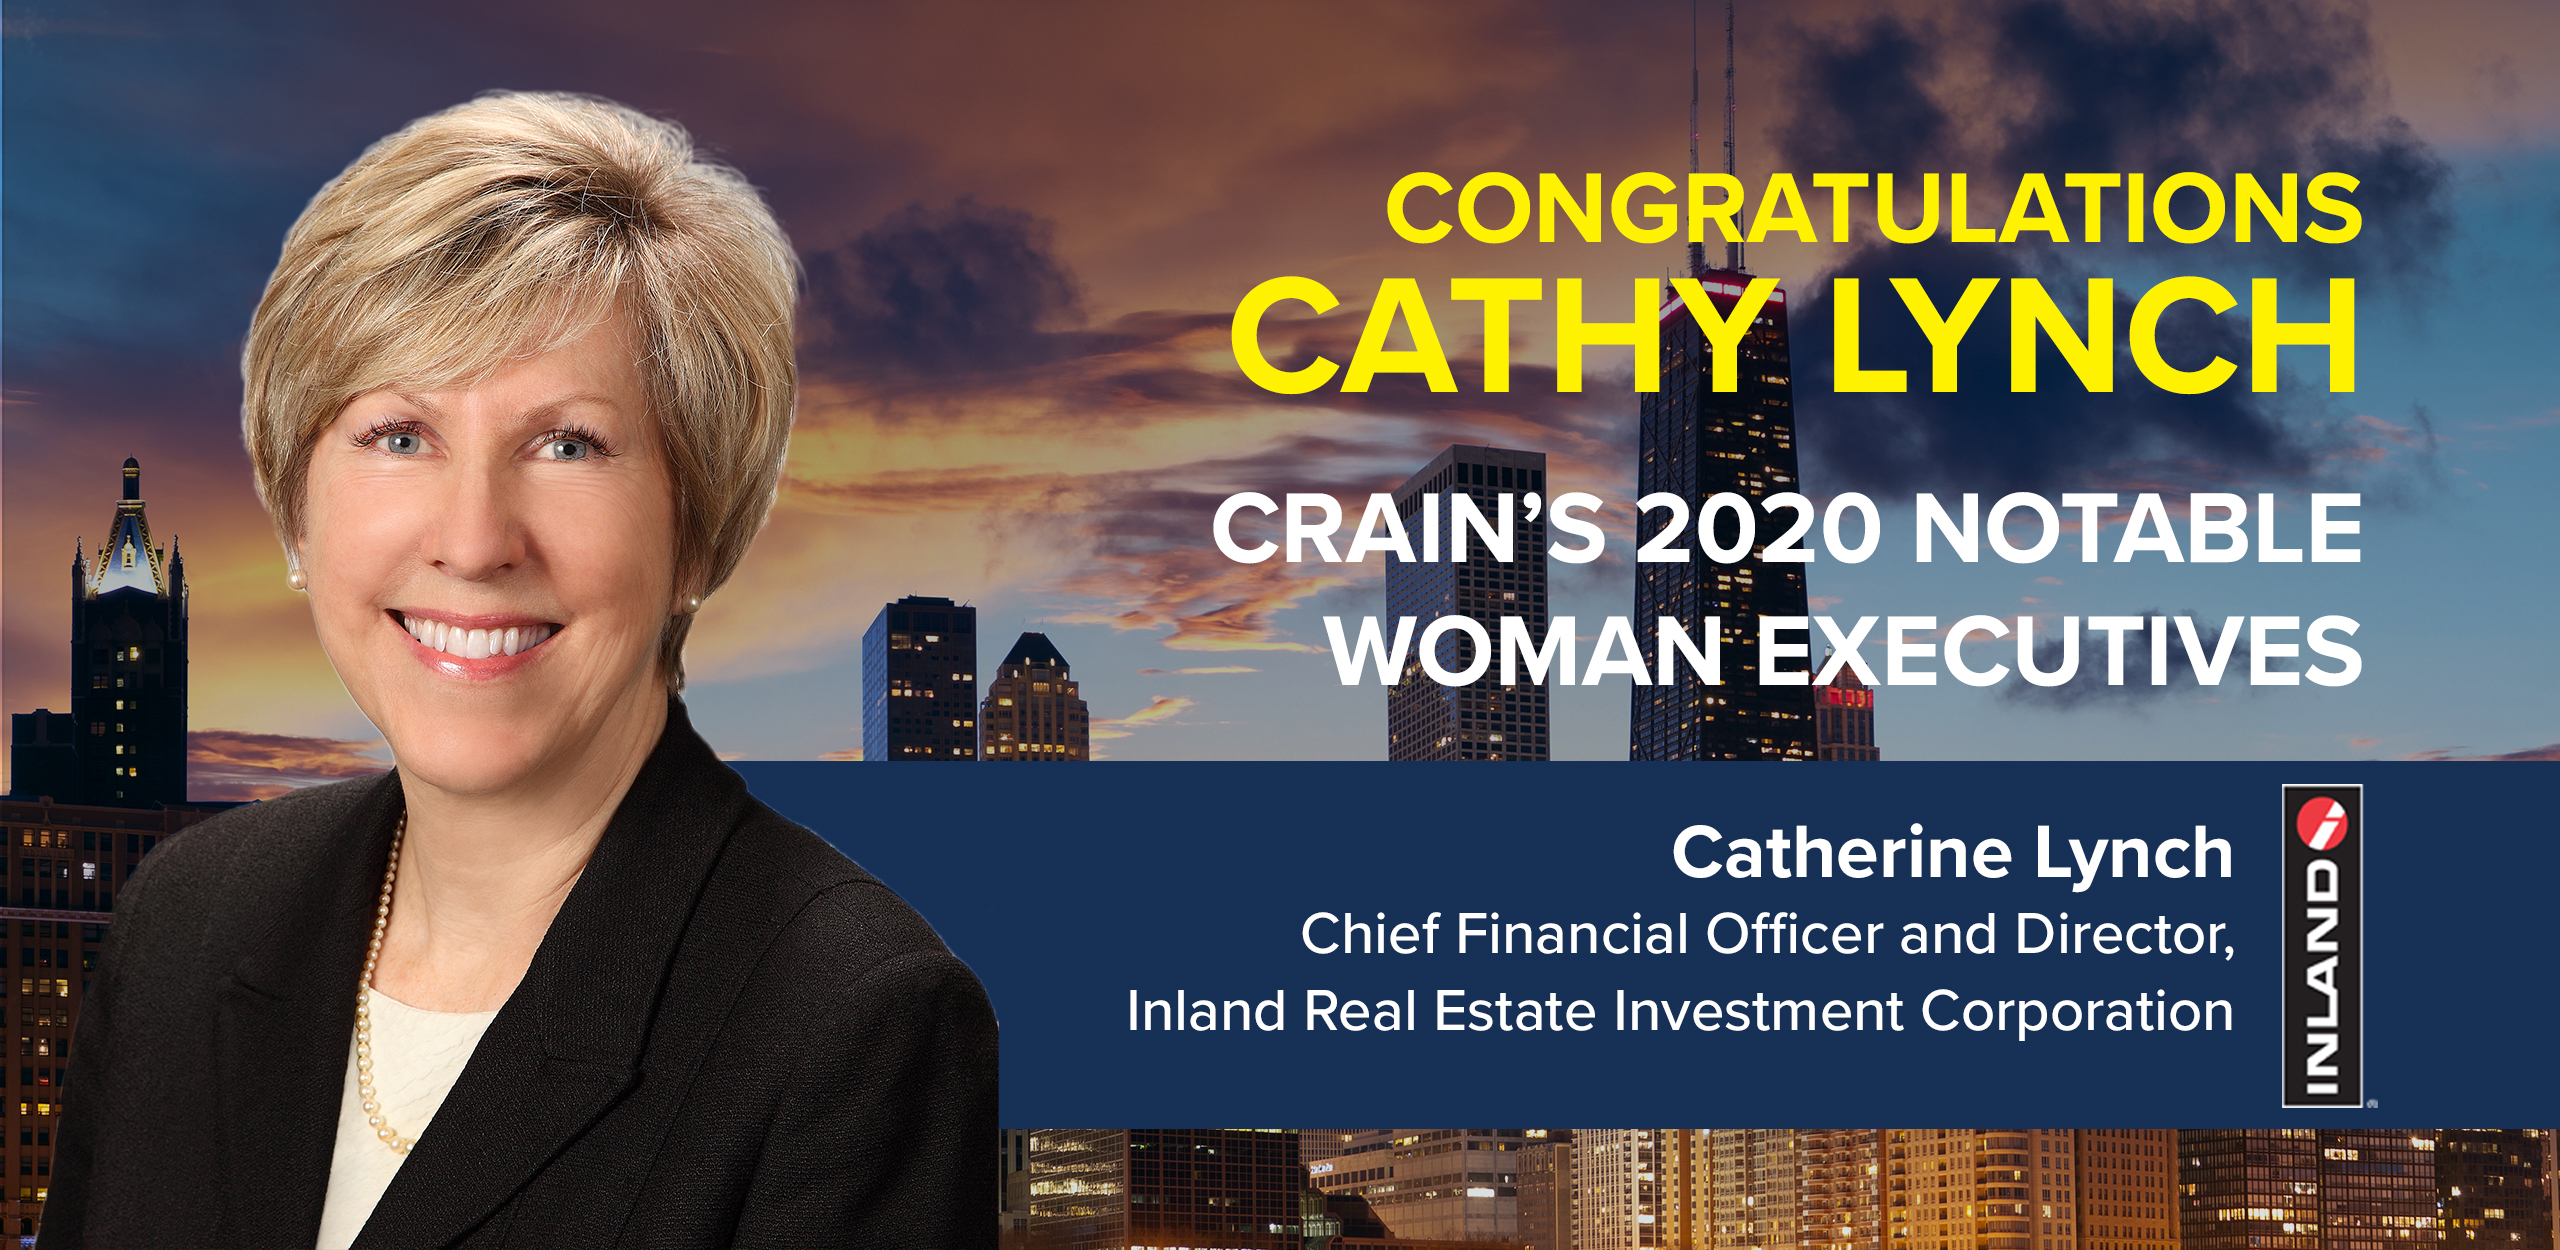 Cathy Lynch Crain's Notable Women Executives 2020